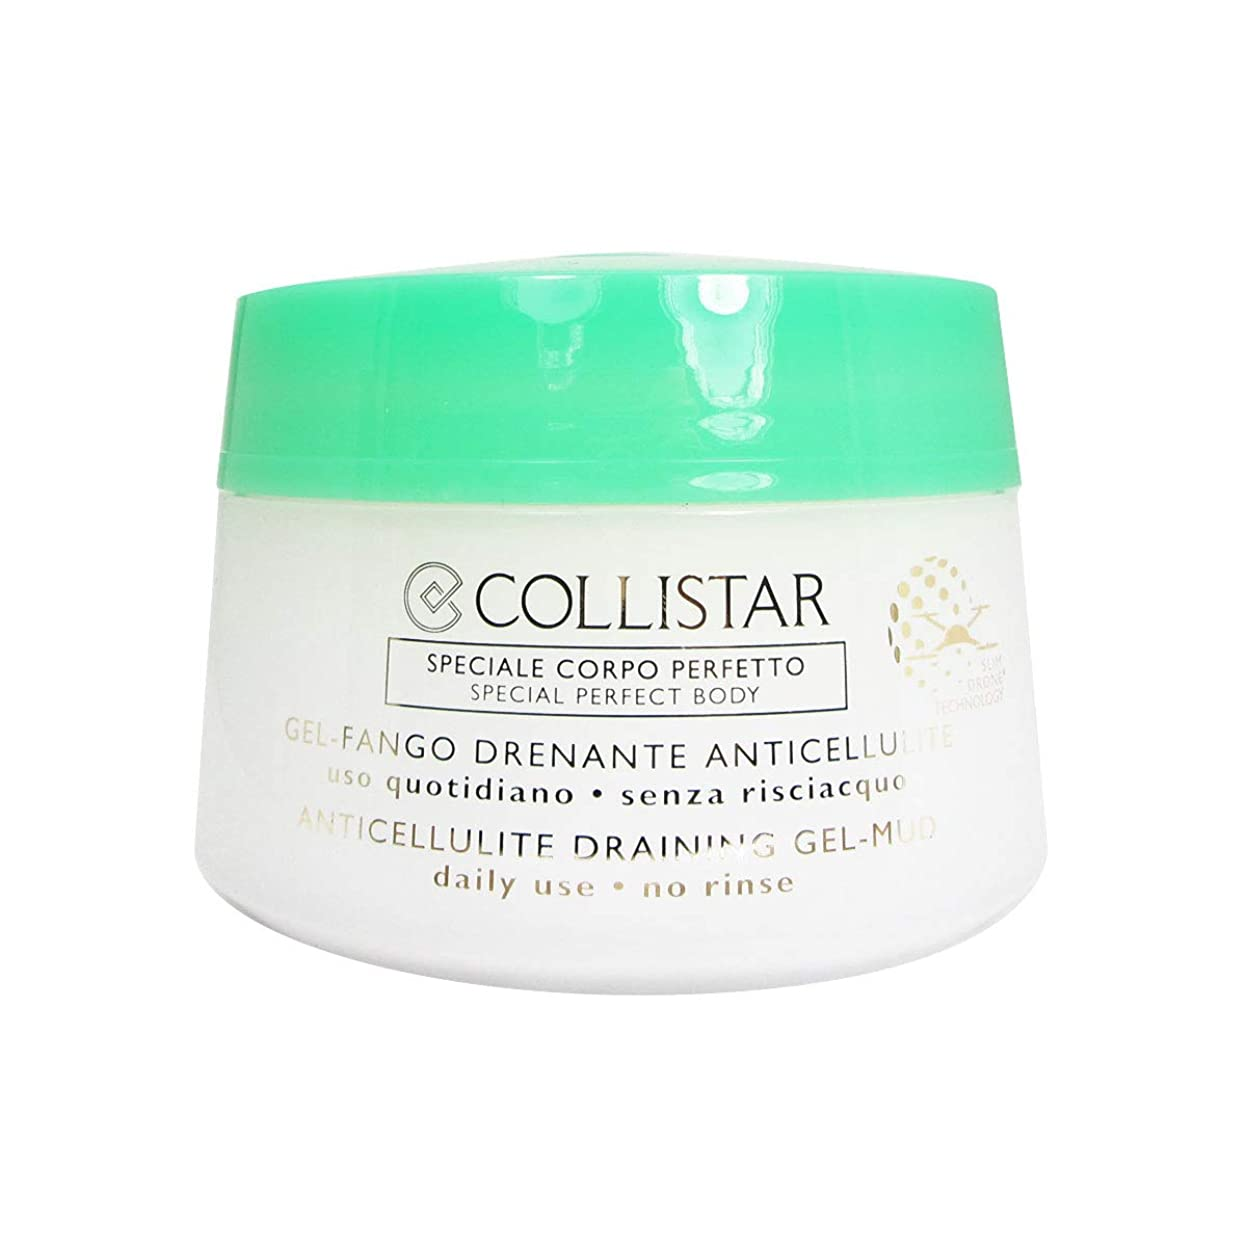 メロディー姓マナーCollistar Anti-cellulite Gel-sludge 400ml [並行輸入品]